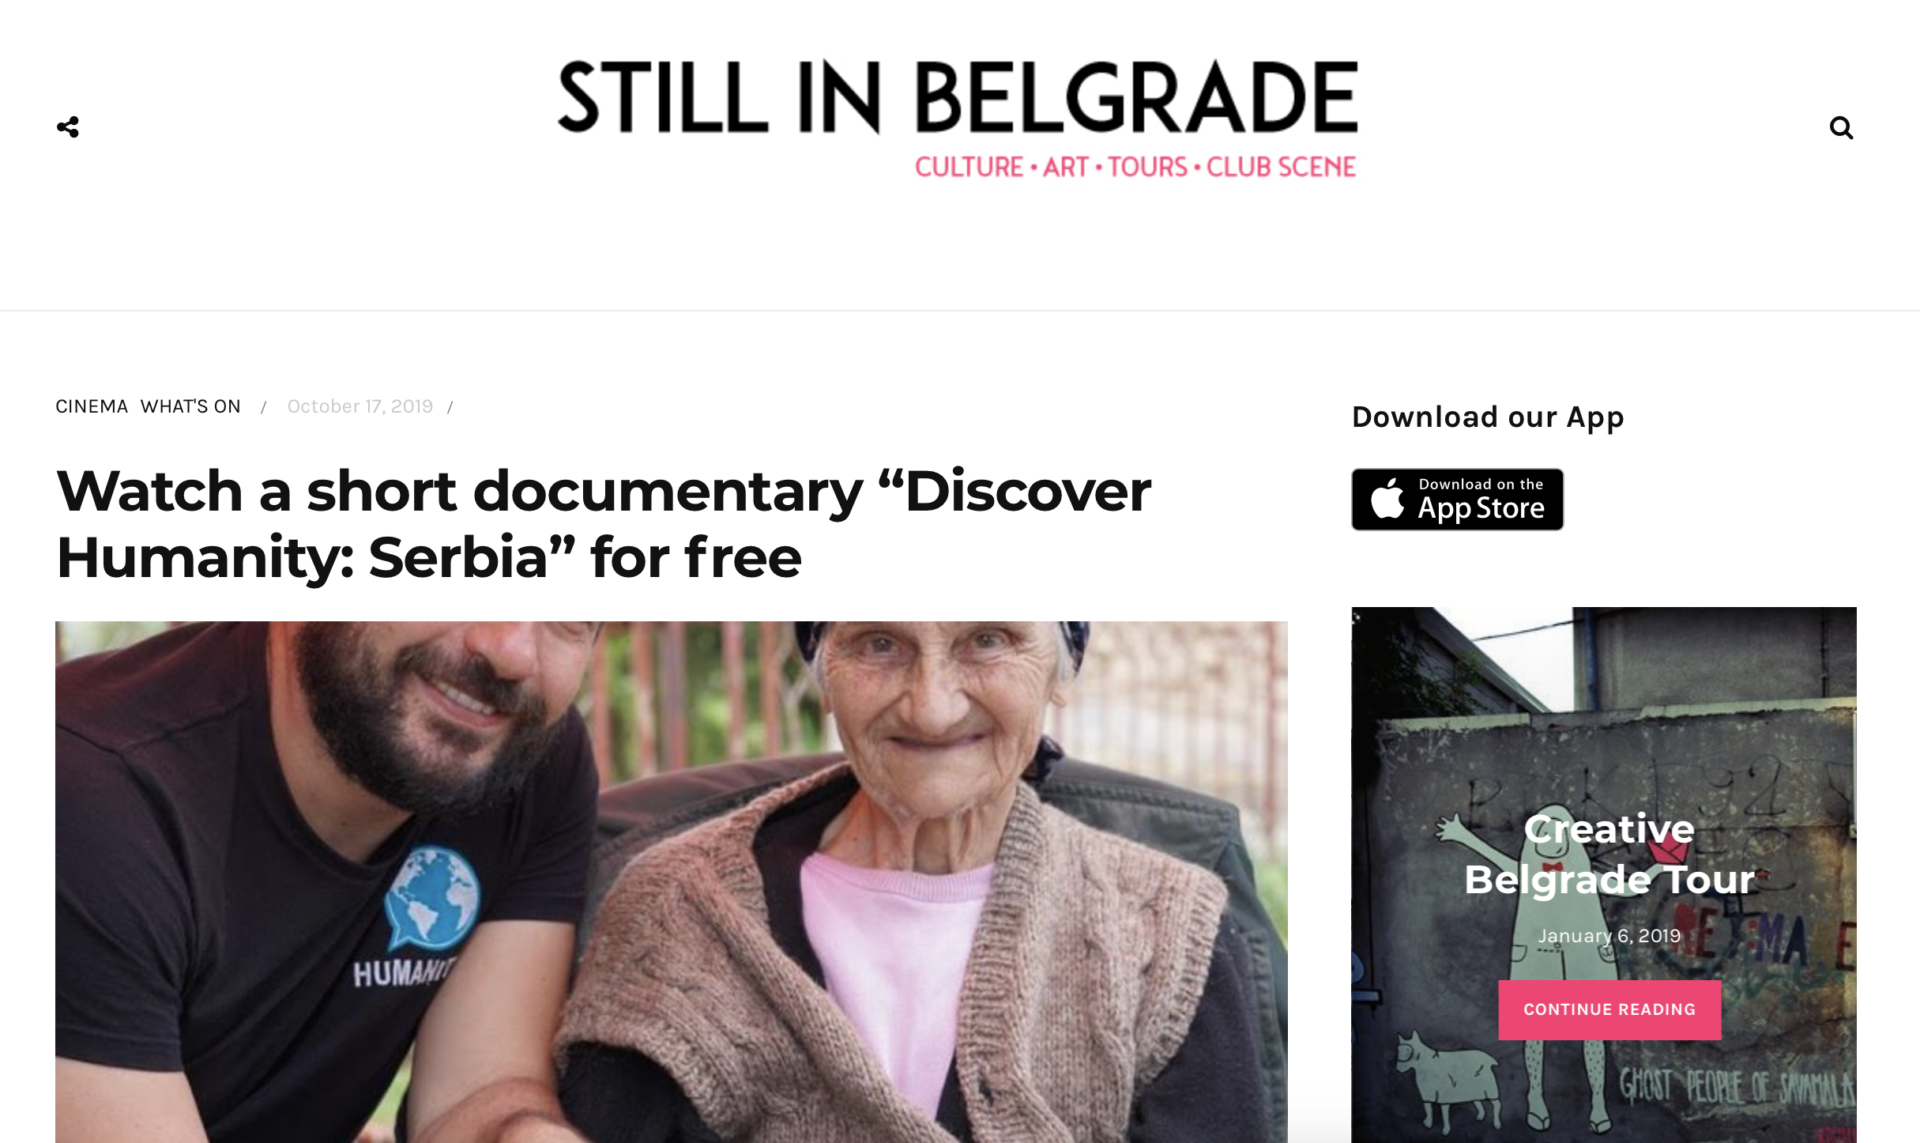 Still in Belgrade article